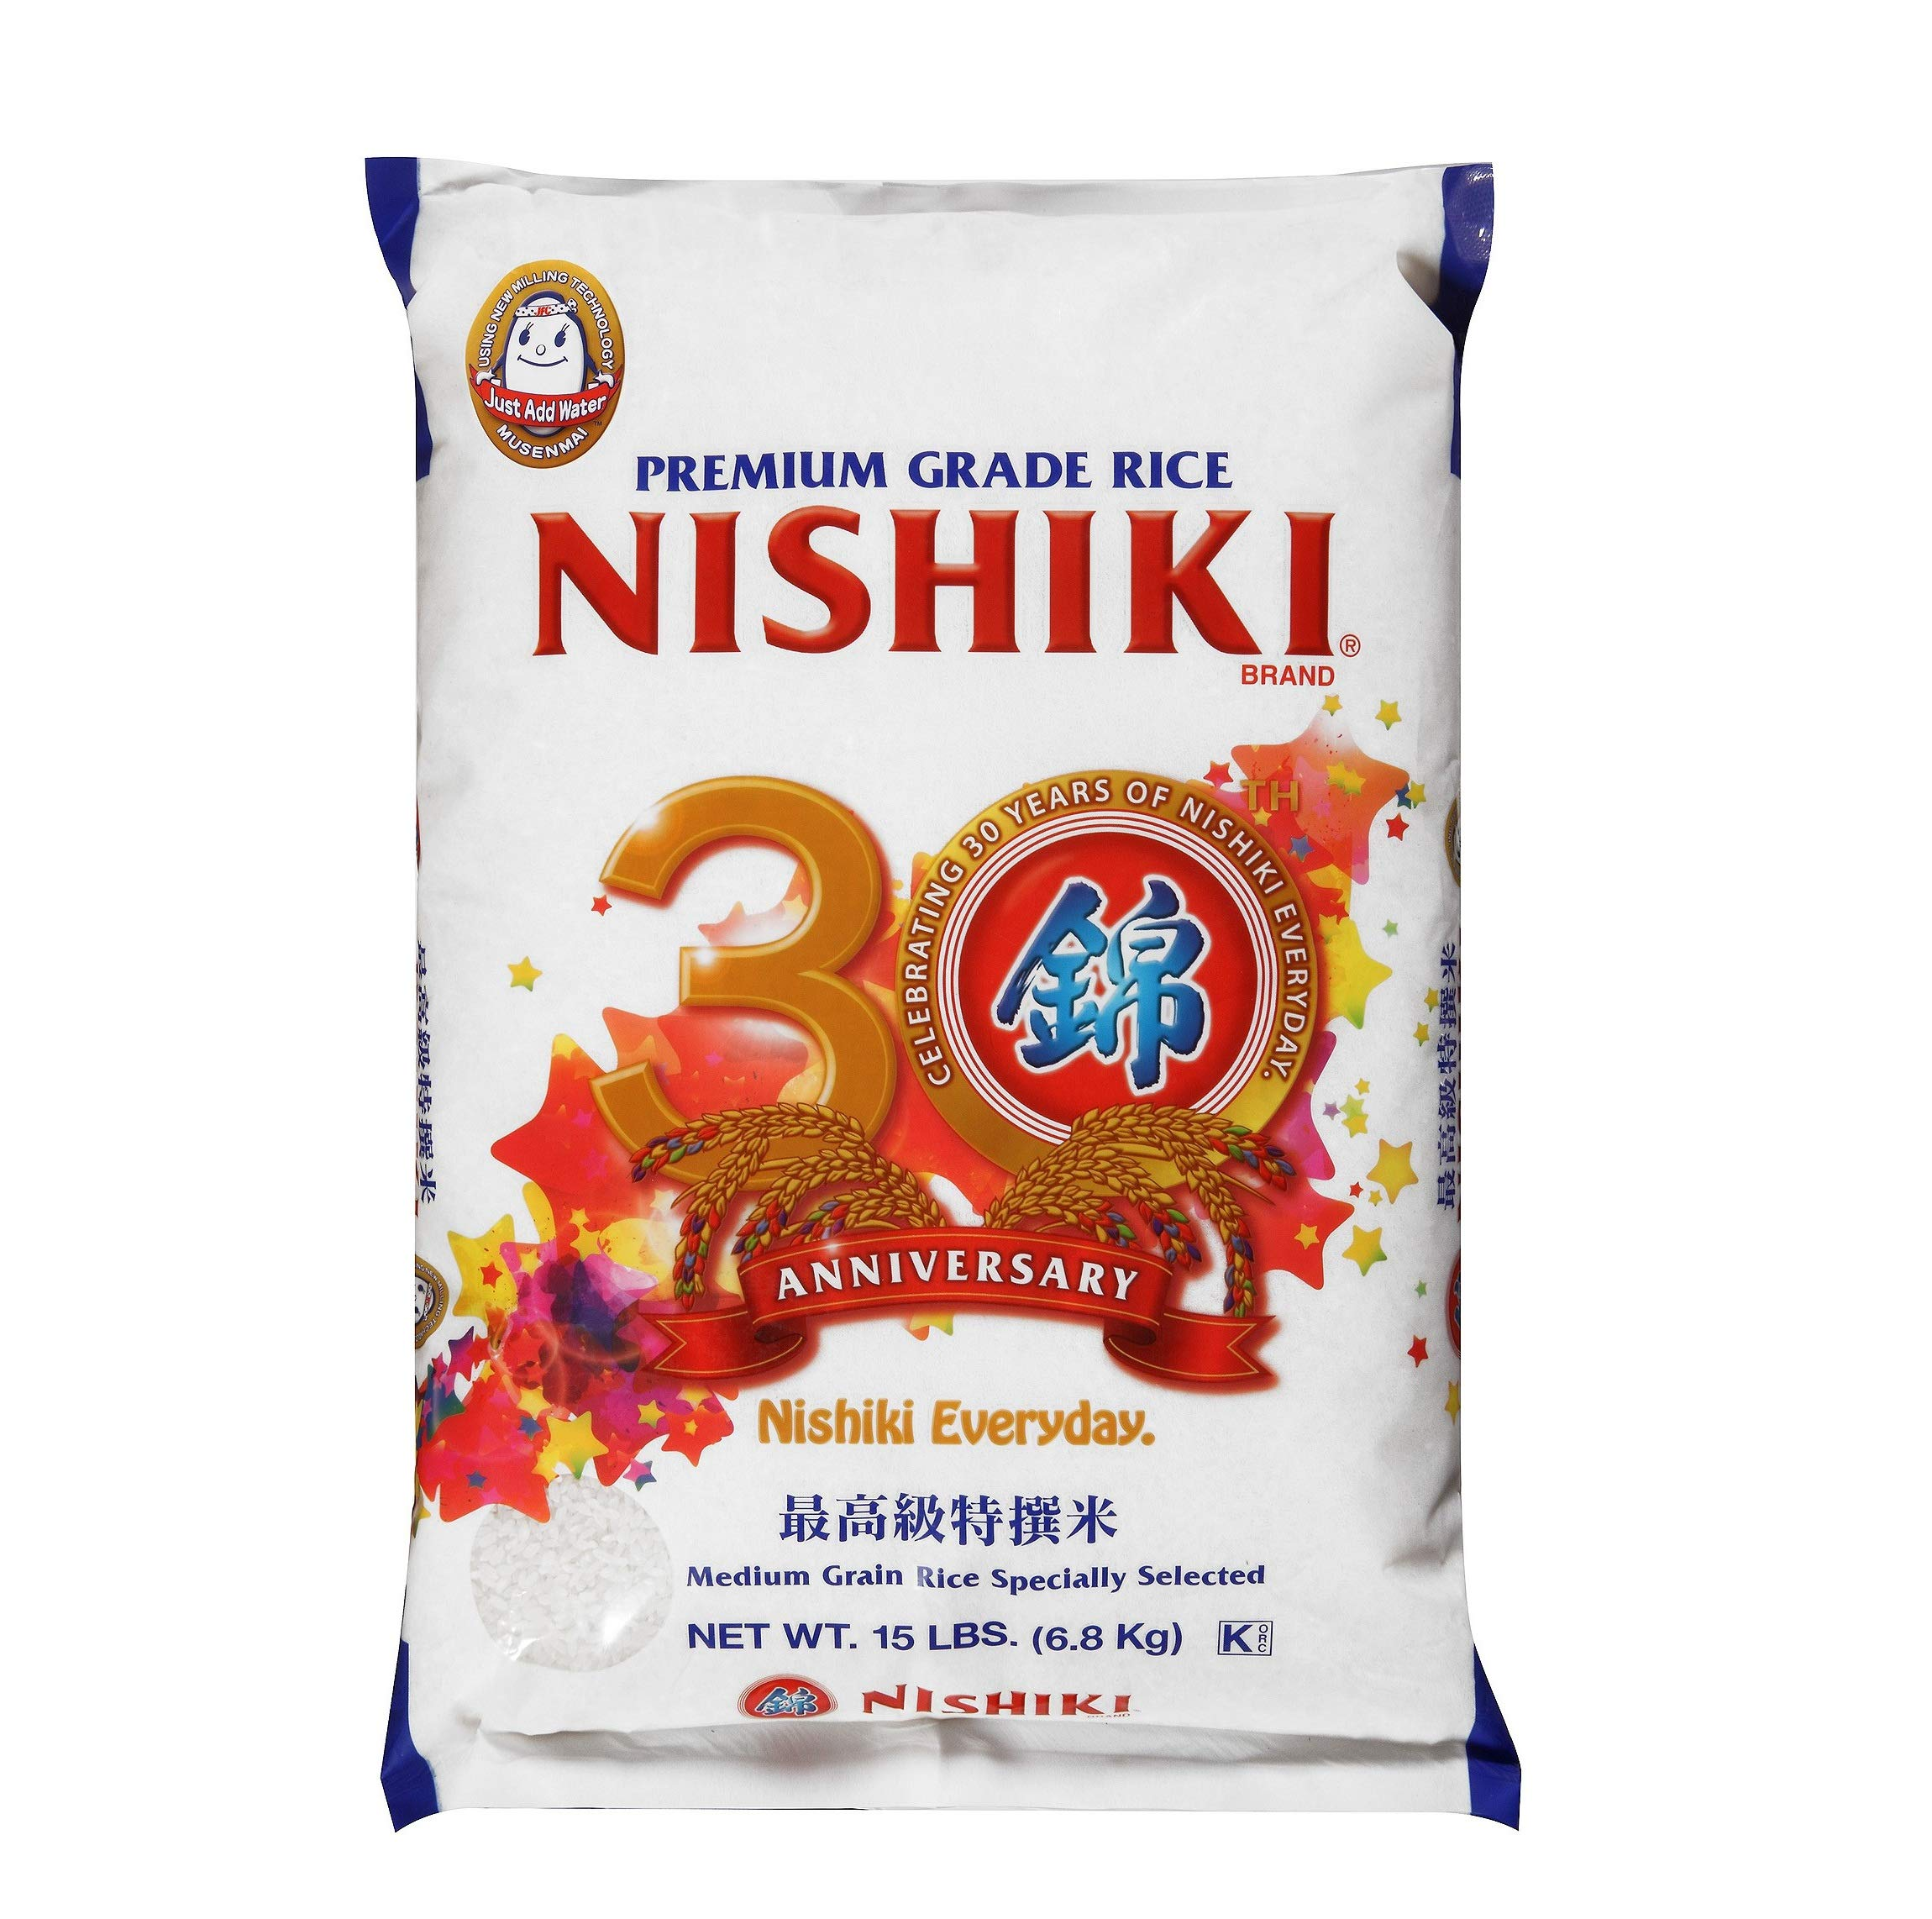 Nishiki Premium Rice, Medium Grain (2 Pack)